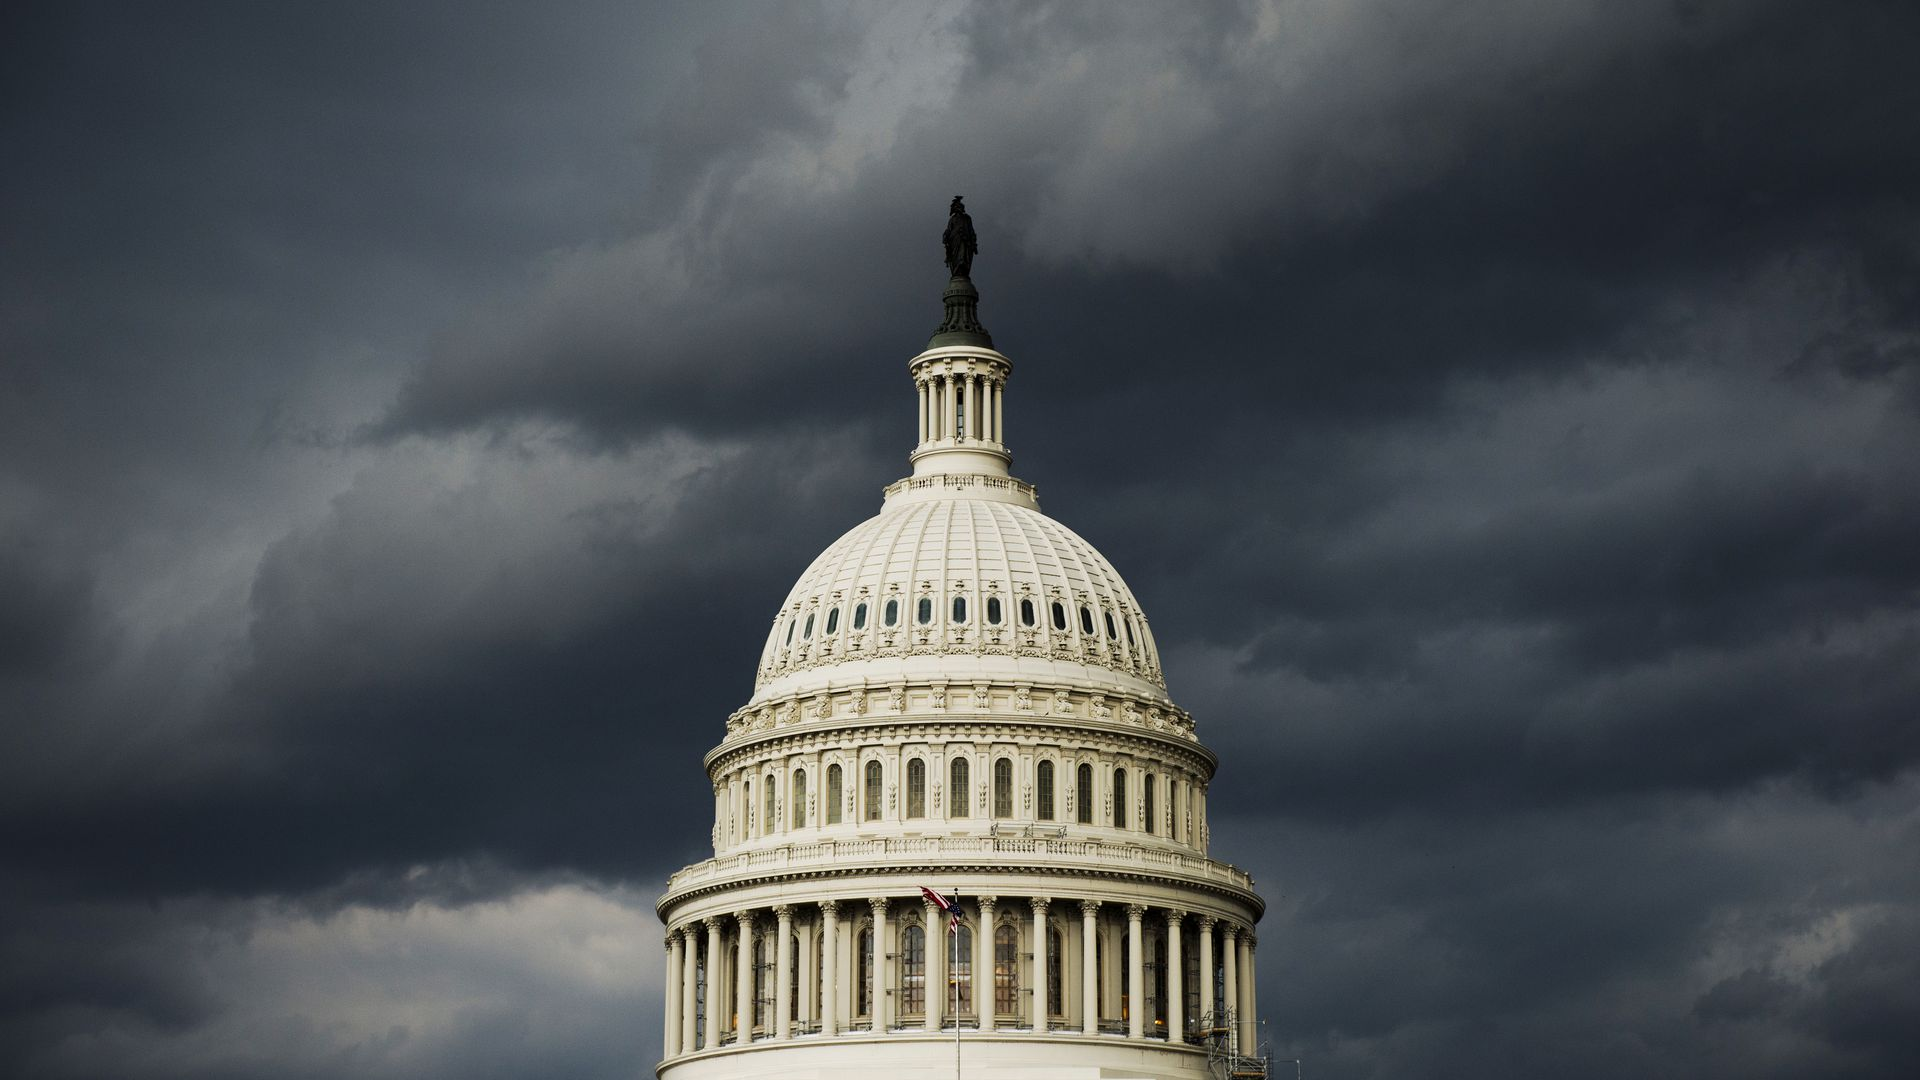 The Capitol Dome under storm clouds